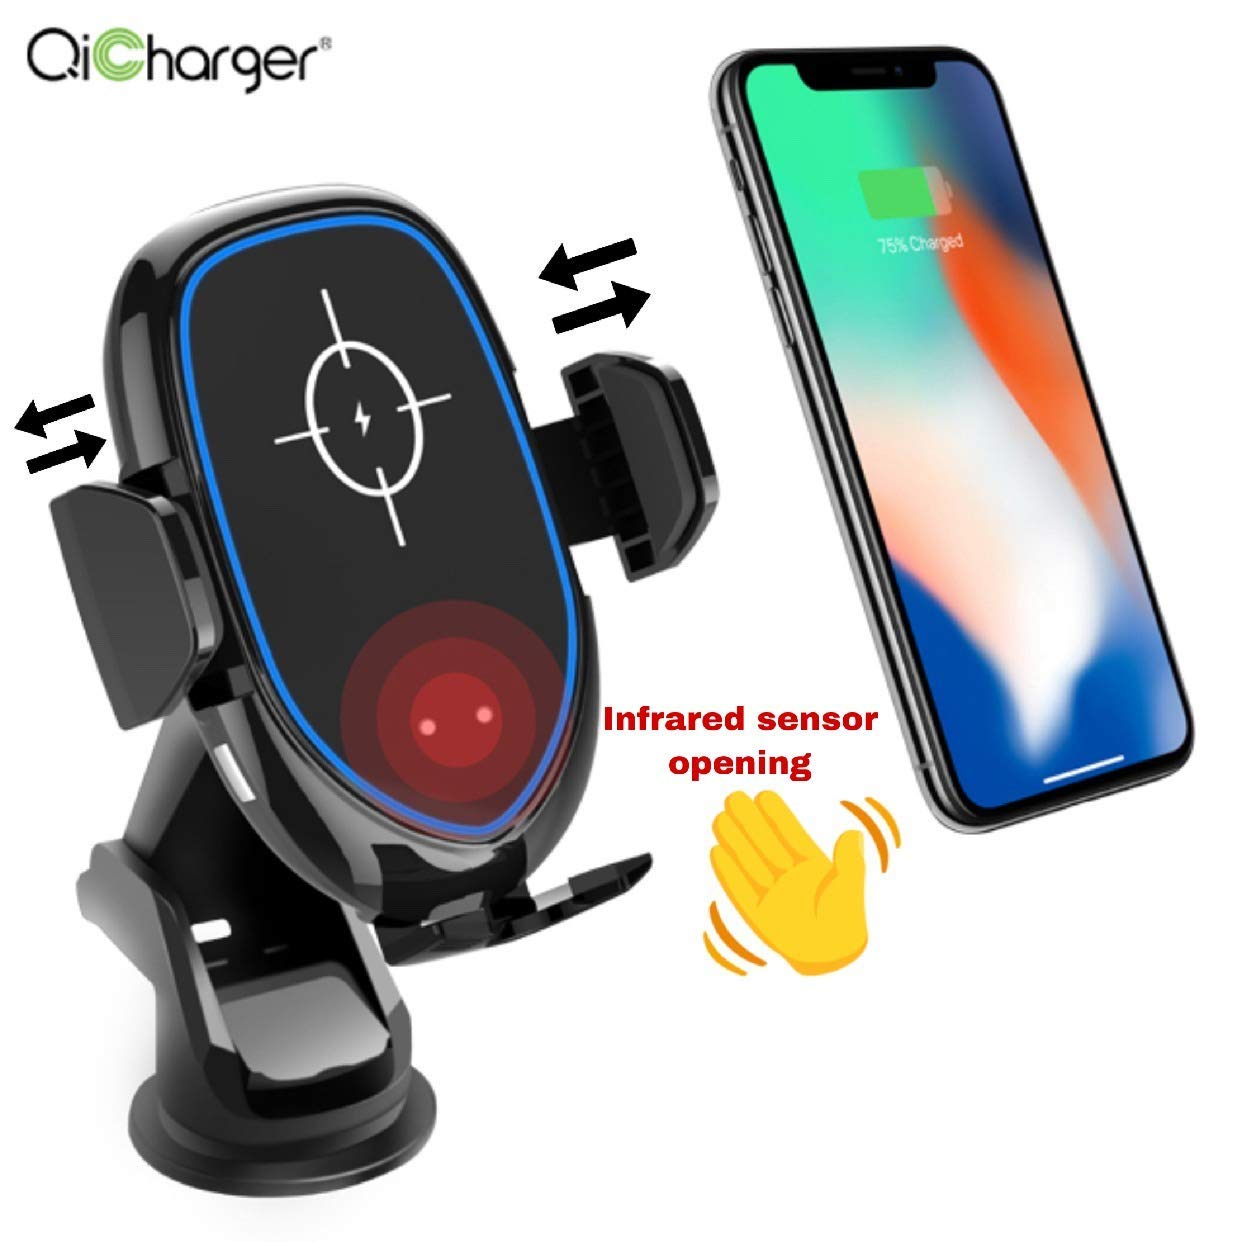 Infrared Sensor Automatic Clamping 360 Rotate Magnetic QI Smart Wireless Fast Phone Car Charger by High quality charger